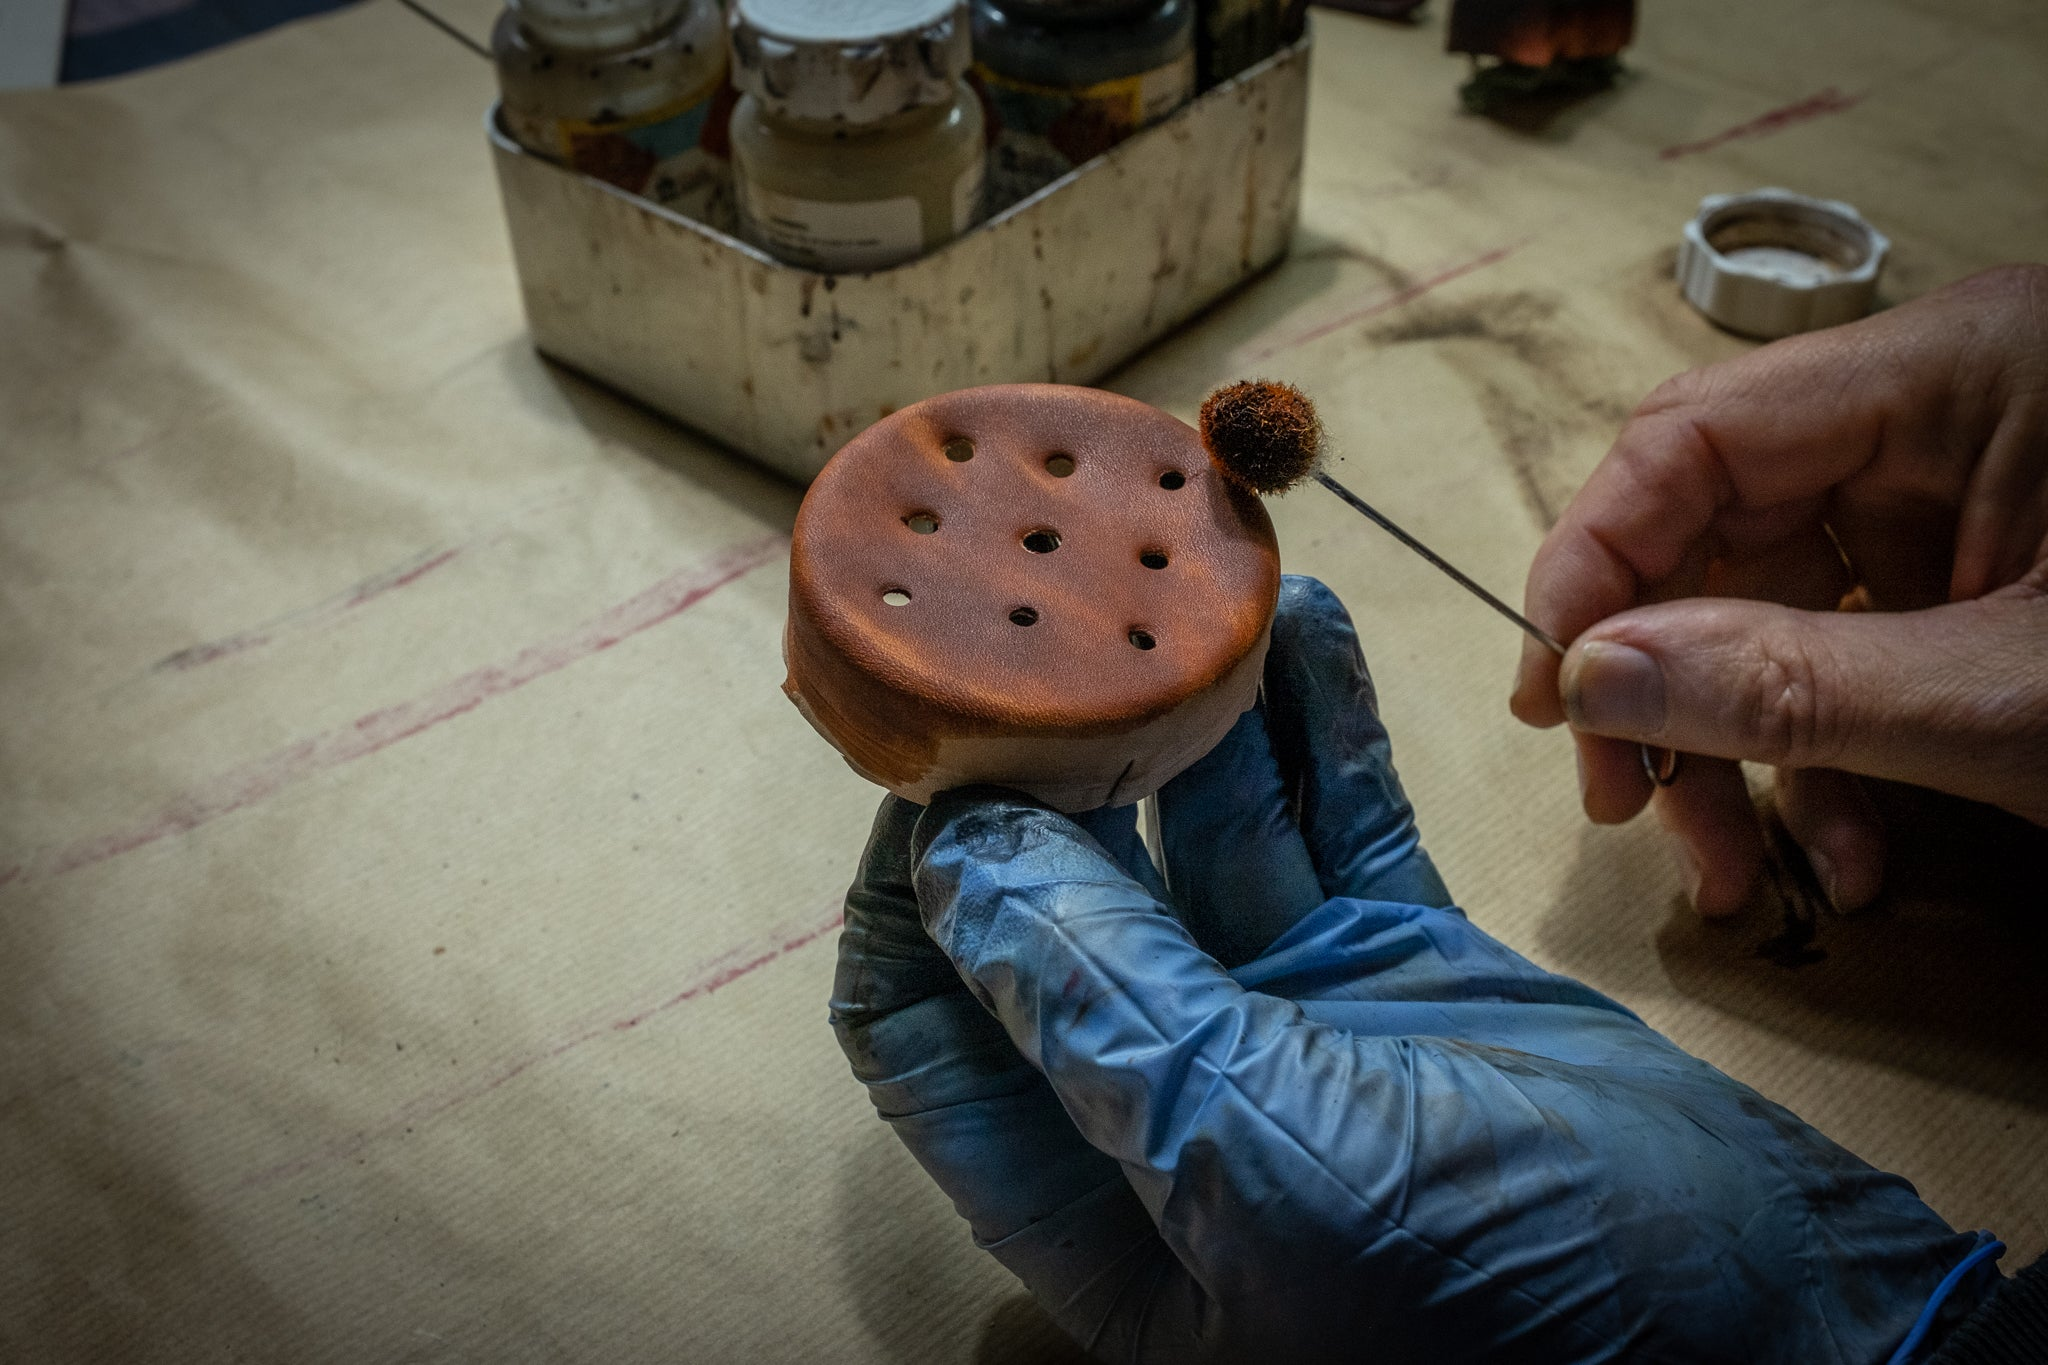 Making a grease pomade pincushion leather dying